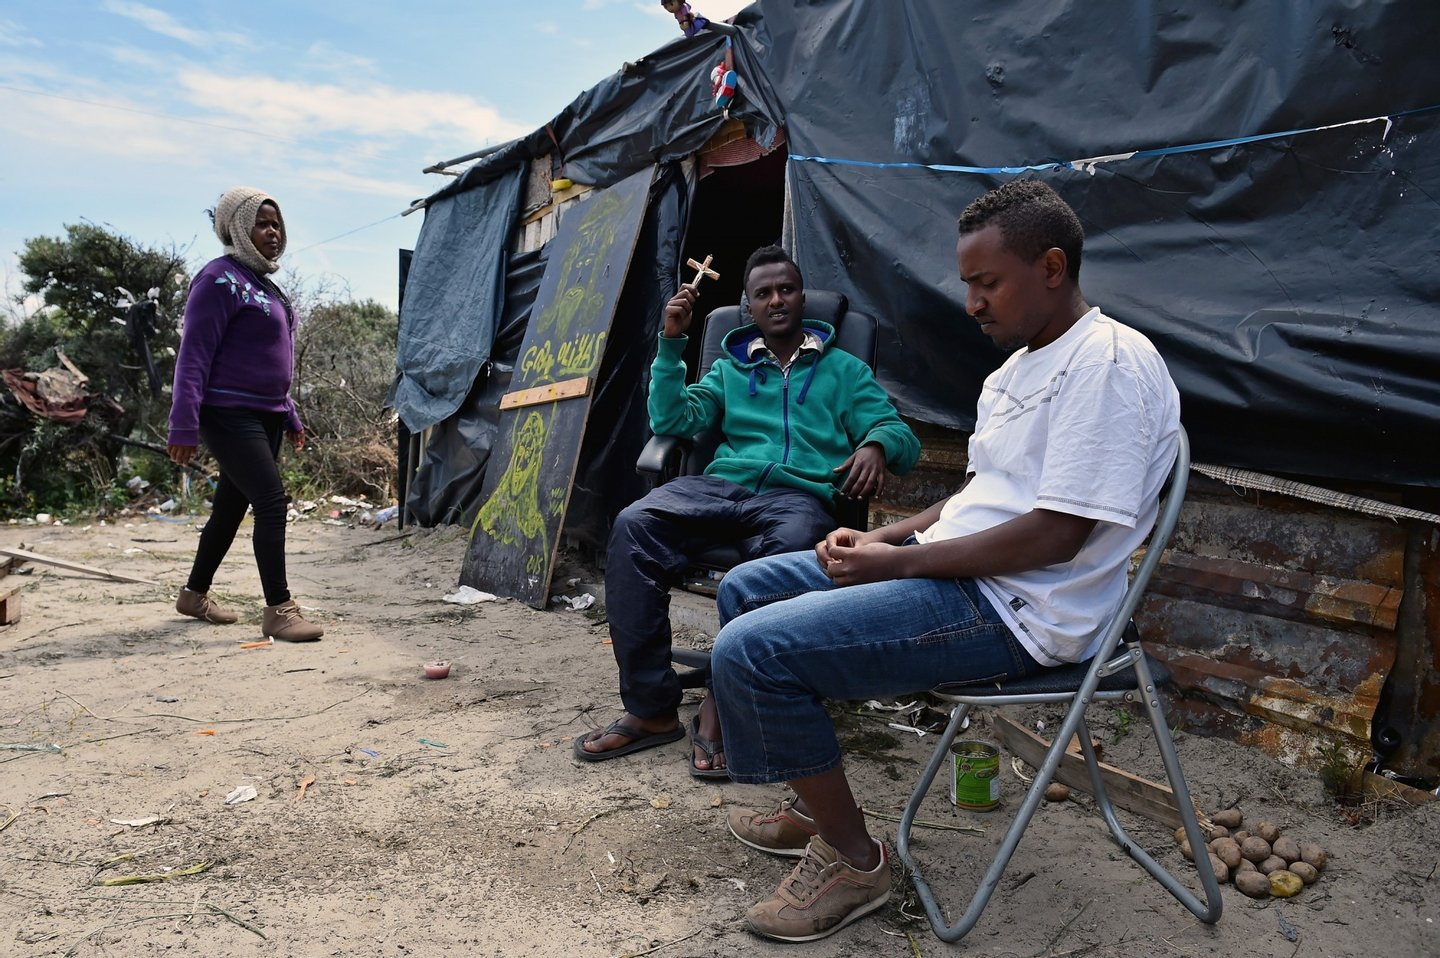 CALAIS, FRANCE - JUNE 25:  Migrants are seen in a make shift camp known as the 'New Jungle' on June 25, 2015 in Calais, France. Many migrants are camped in Calais on the side of the motorways as they attempt to board trucks stuck in slow moving traffic in the hope of making it into the UK.  (Photo by Jeff J Mitchell/Getty Images)